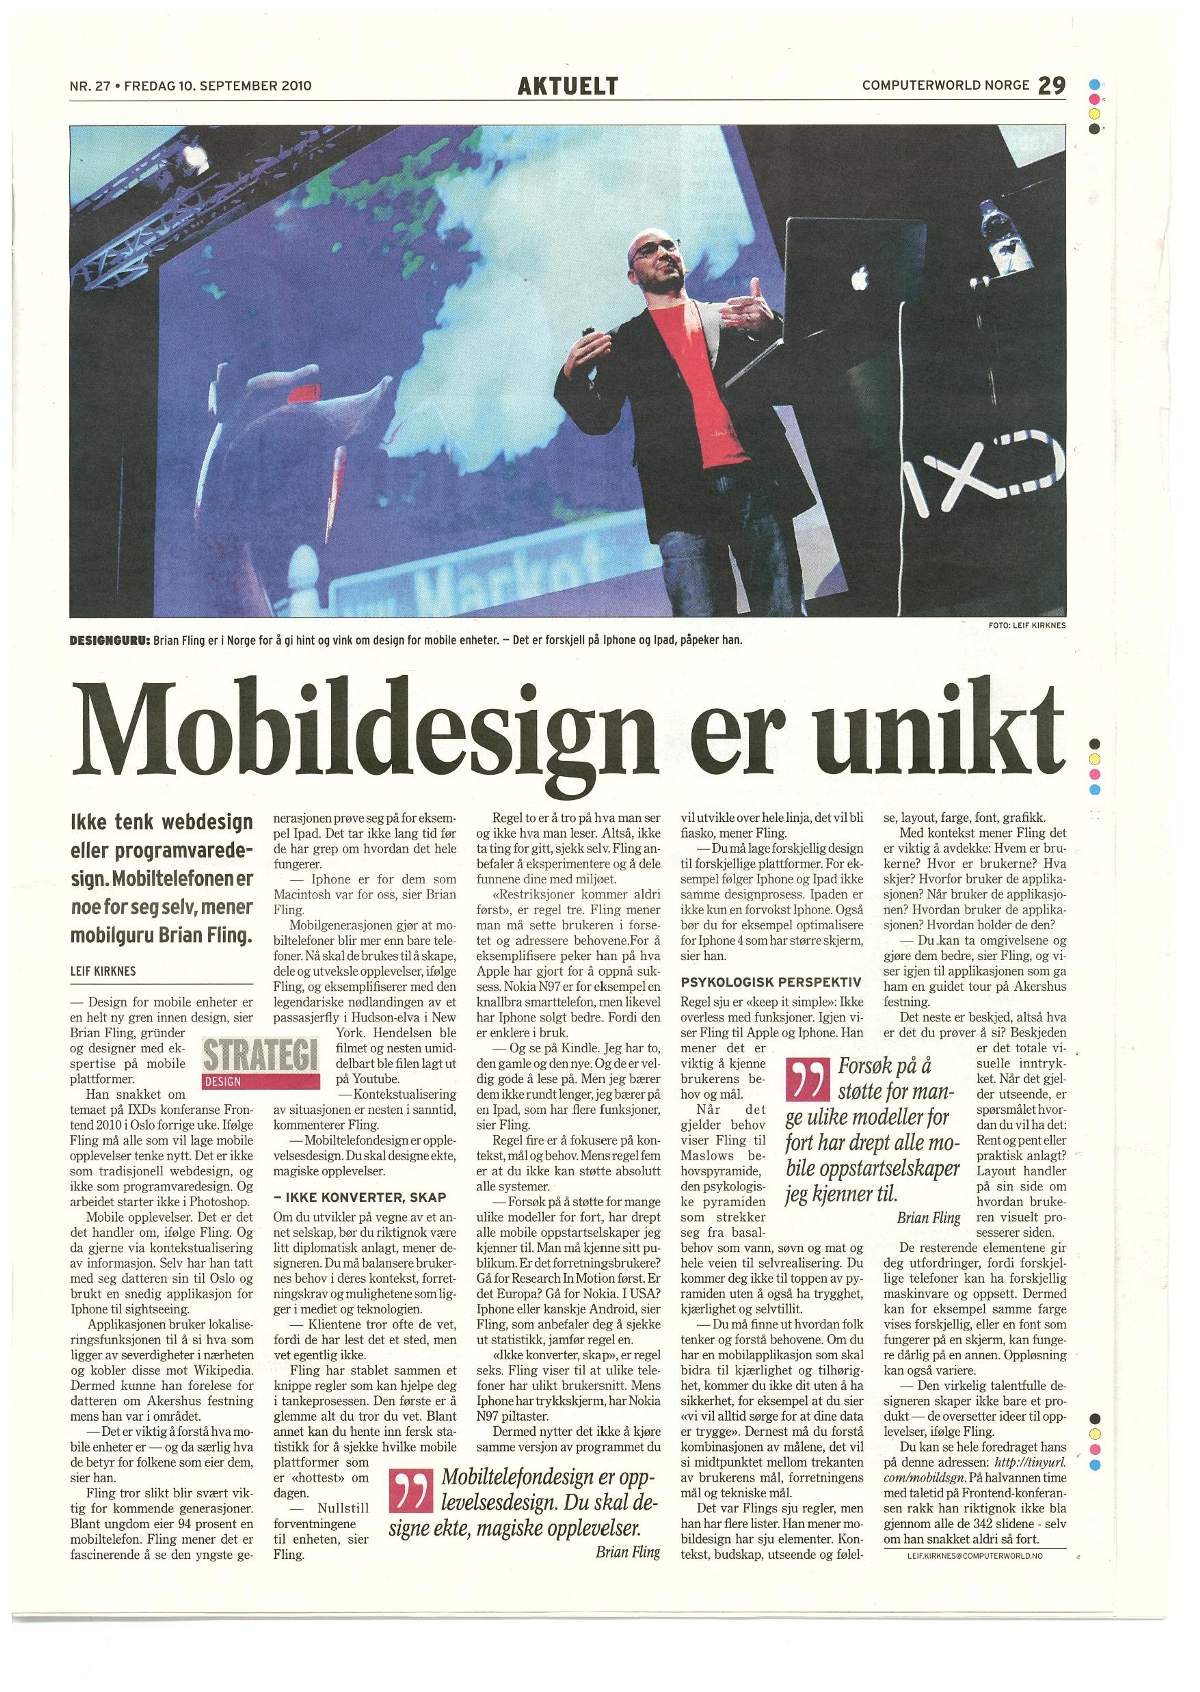 From the Norwegian paper Computerworld — 10th of September 2010